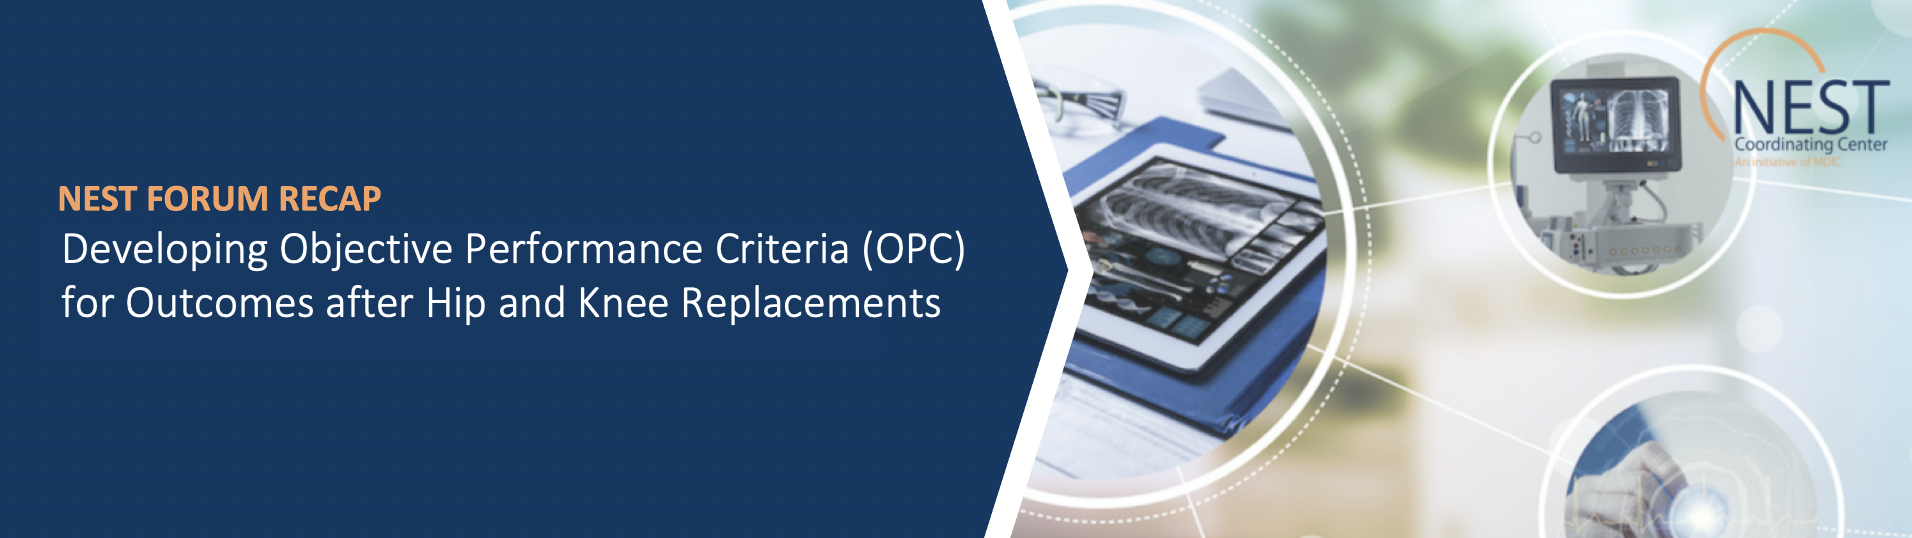 Header for Developing OPC Blog Post